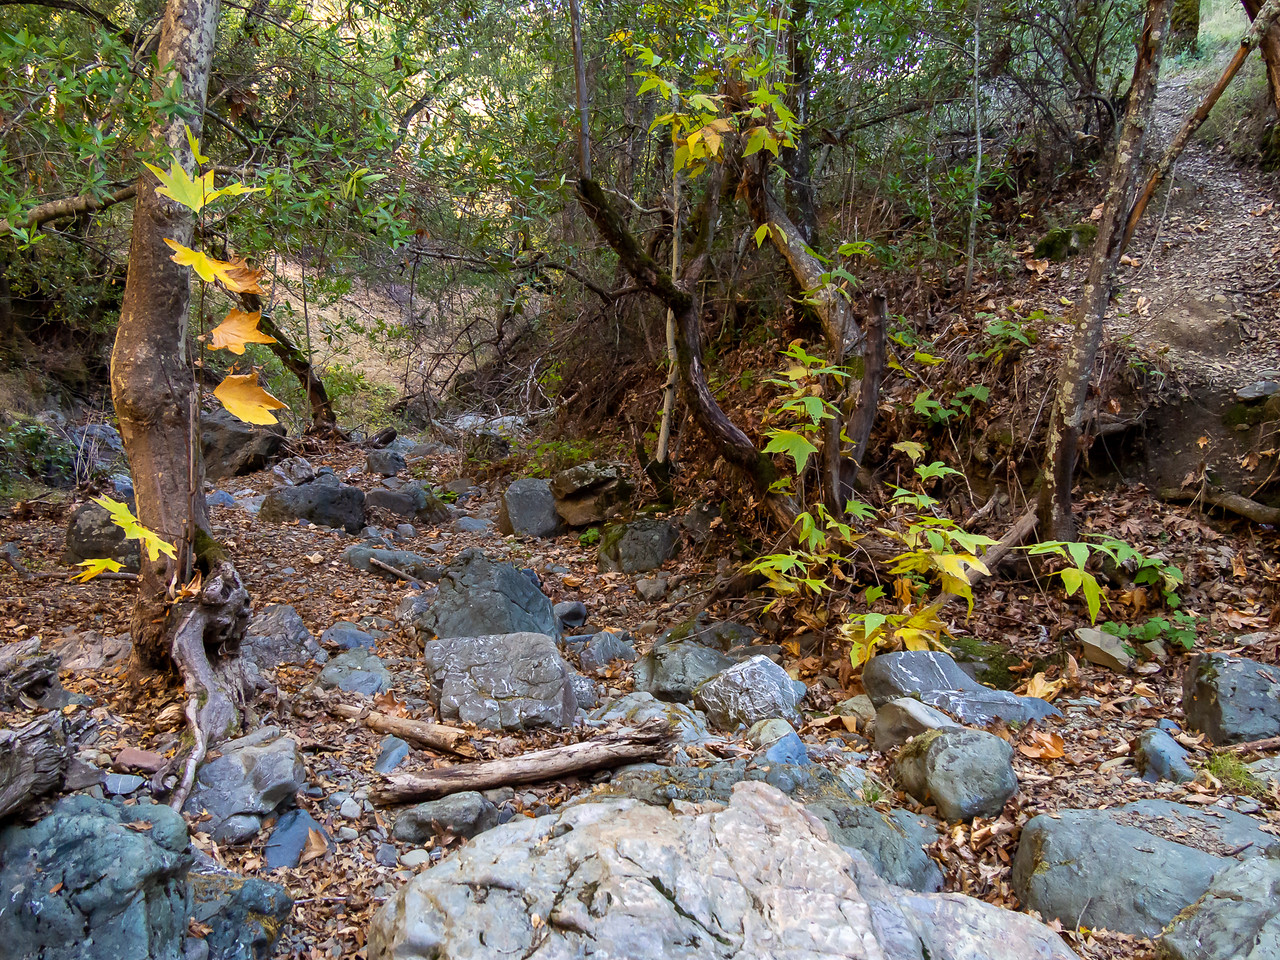 The Little Fork of Coyote Creek was dry.  I eagerly look forward to having enough rain that the creeks flow again.